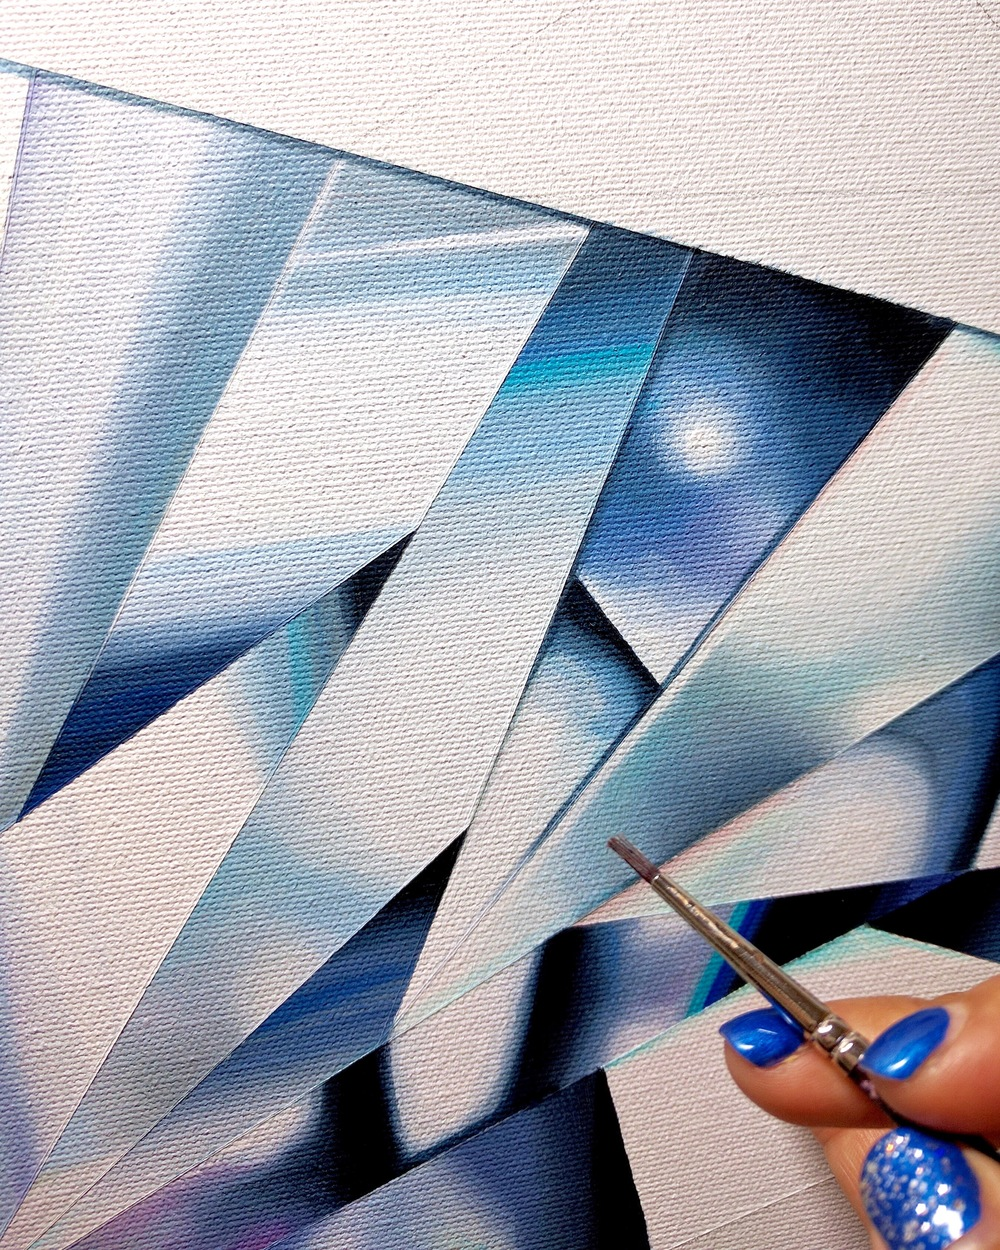 Polished diamonds are pure precision! If you know your diamonds, you totally know this! My paintings, just like my jewelry pieces capture precision and pay tribute to this poetry in geometry. Progress of 'Pure Heart', my white heart-shaped diamond painting from 'Diamond Portrait Series'. ©Reena Ahluwalia